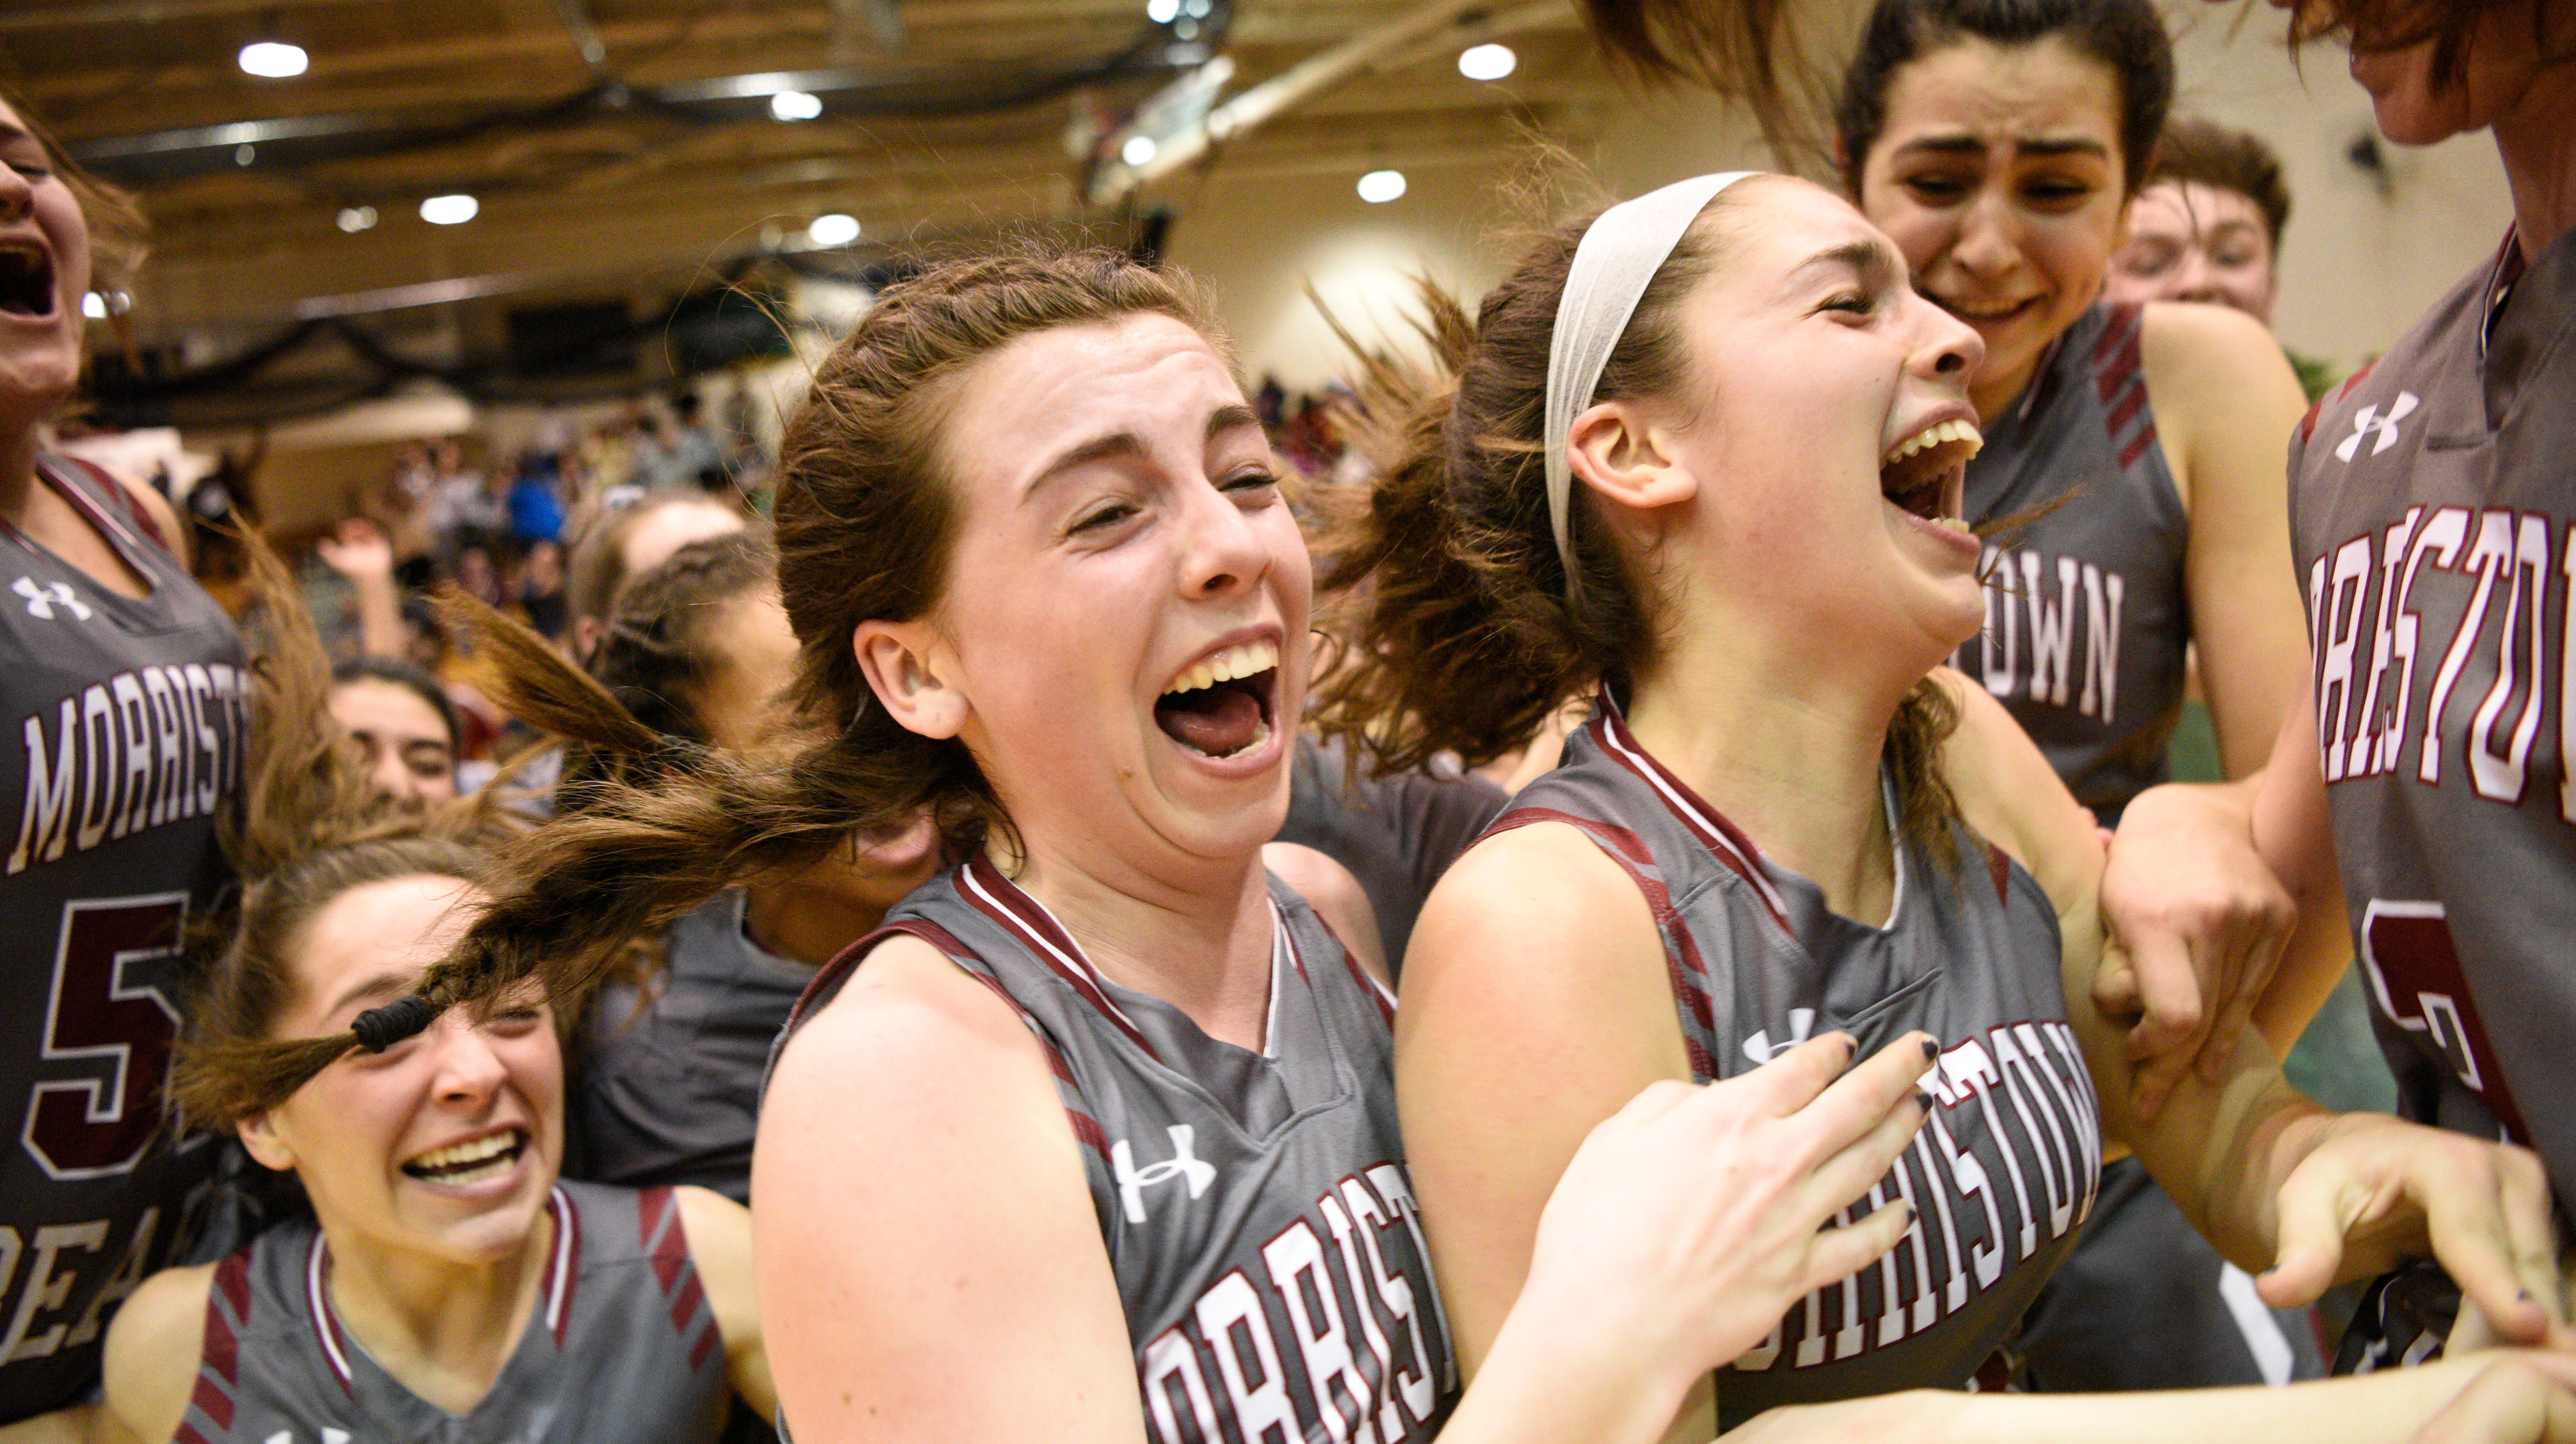 Chatham vs. Morristown-Beard in the Morris County Tournament girls basketball final at the County College of Morris in Randolph on Friday, February 22, 2019. (center)  MB #24 Bridget Monaghan celebrates with MB #25 Christina De Mattheis after Mattheis scored the game-winning basket.